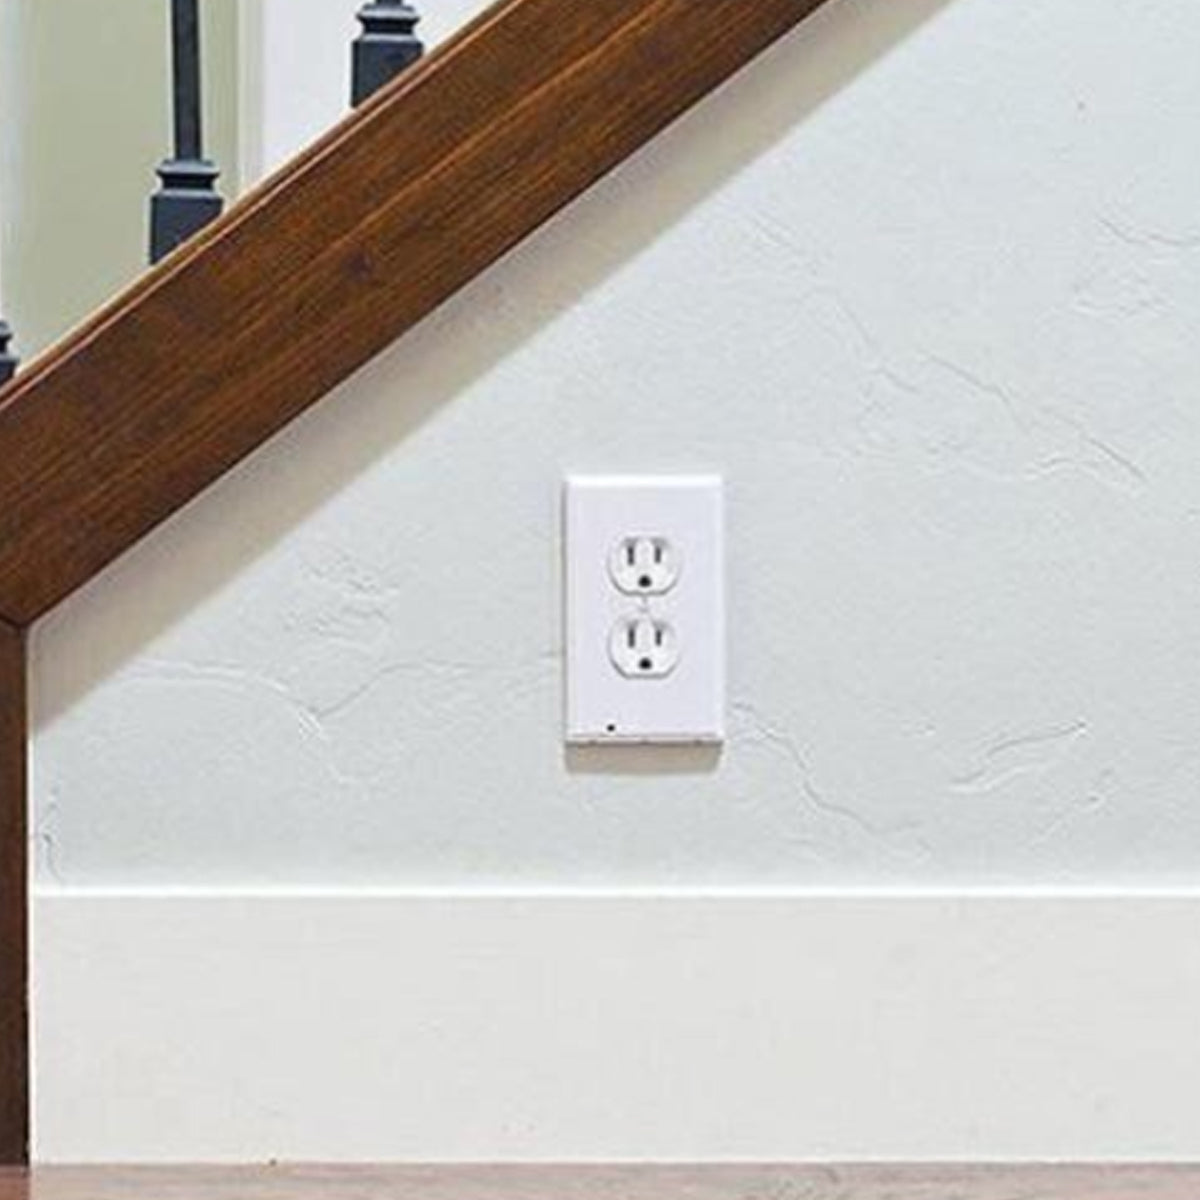 shopify-Path Lighter Auto Motion Wall Plate LED Light  2- PACK-14